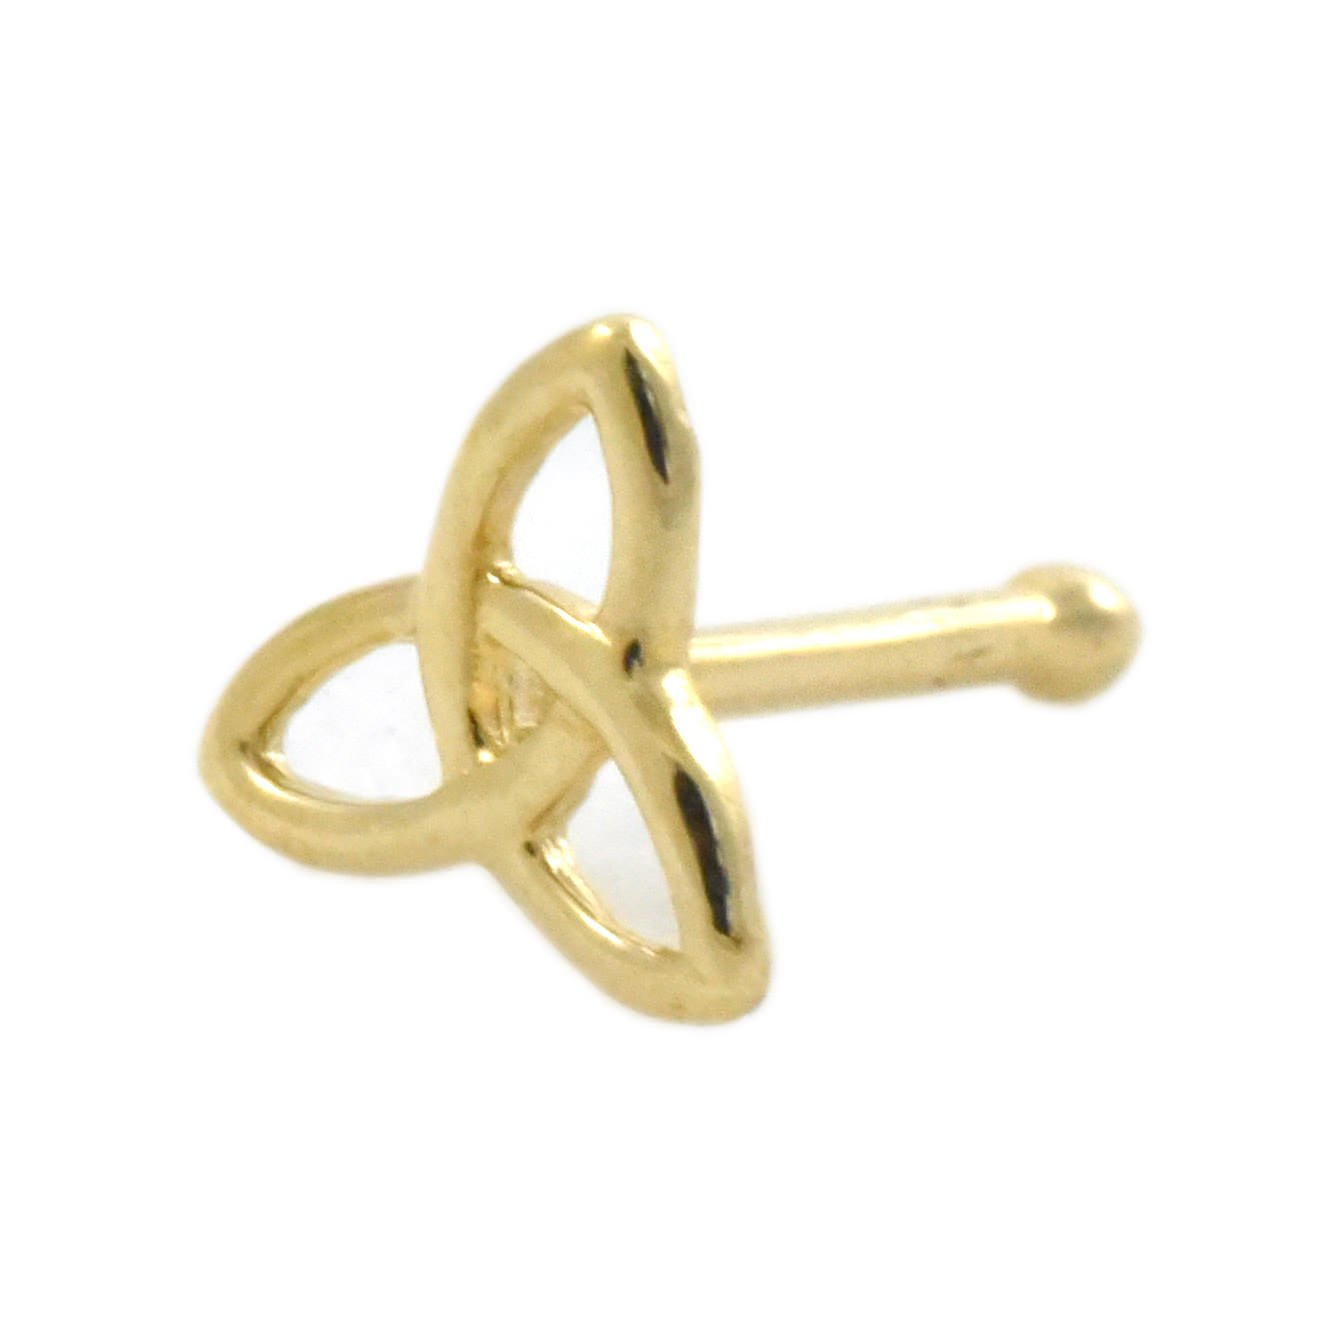 Triquetra Celtic Trinity Knot 14k Gold Nose Ball Bone End Piercing Stud 20 Gauge Jewelry